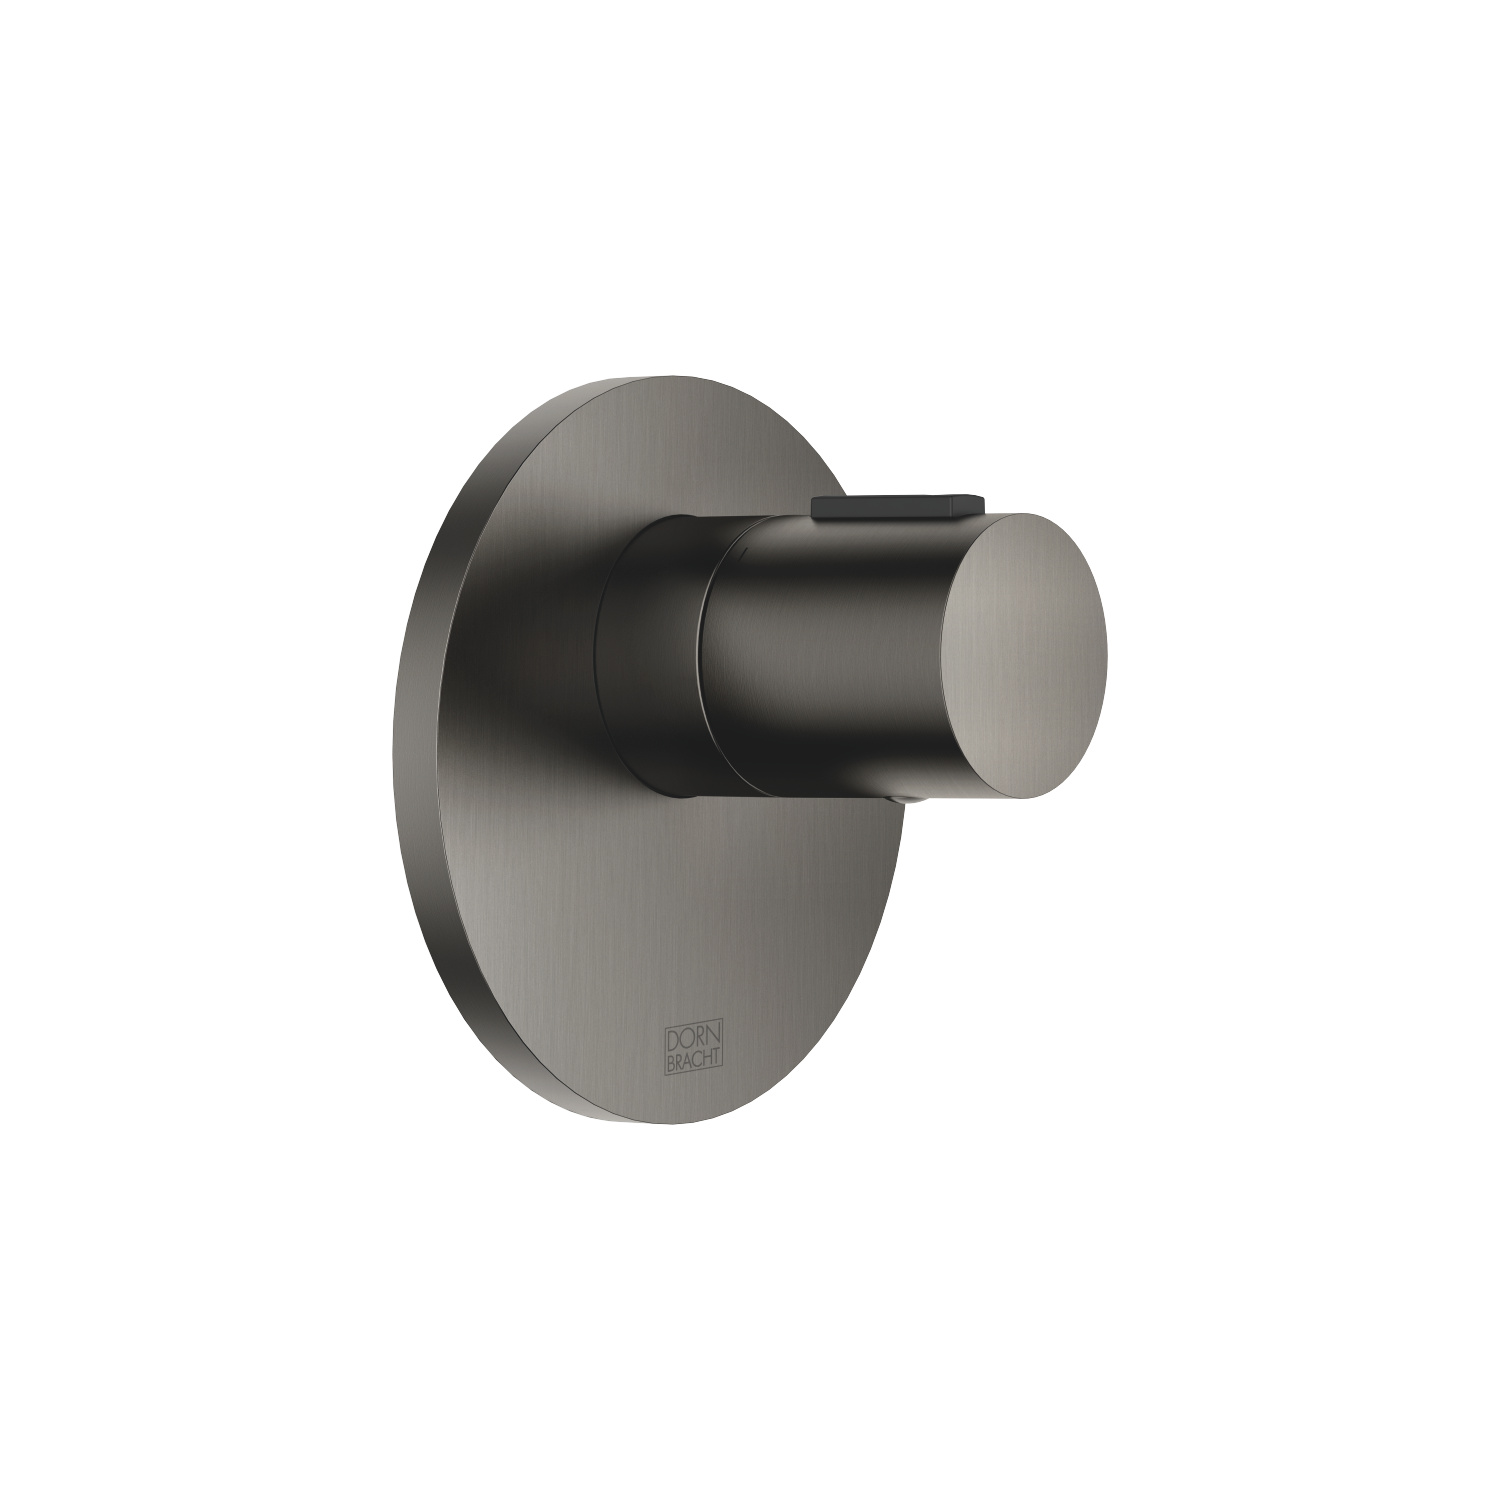 xTOOL Concealed thermostat without volume control - Dark Platinum matte